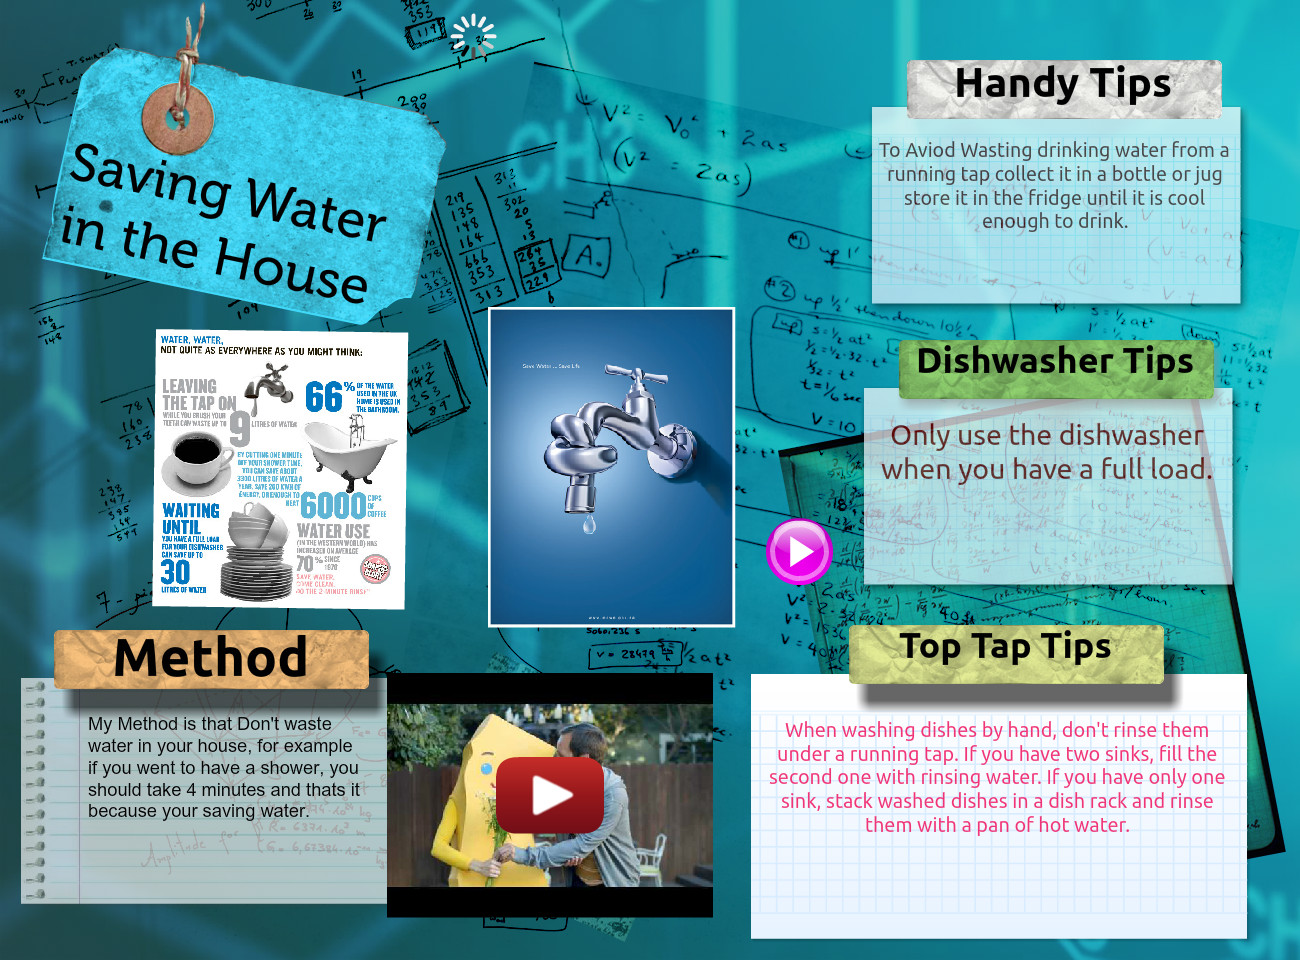 Saving water in your house